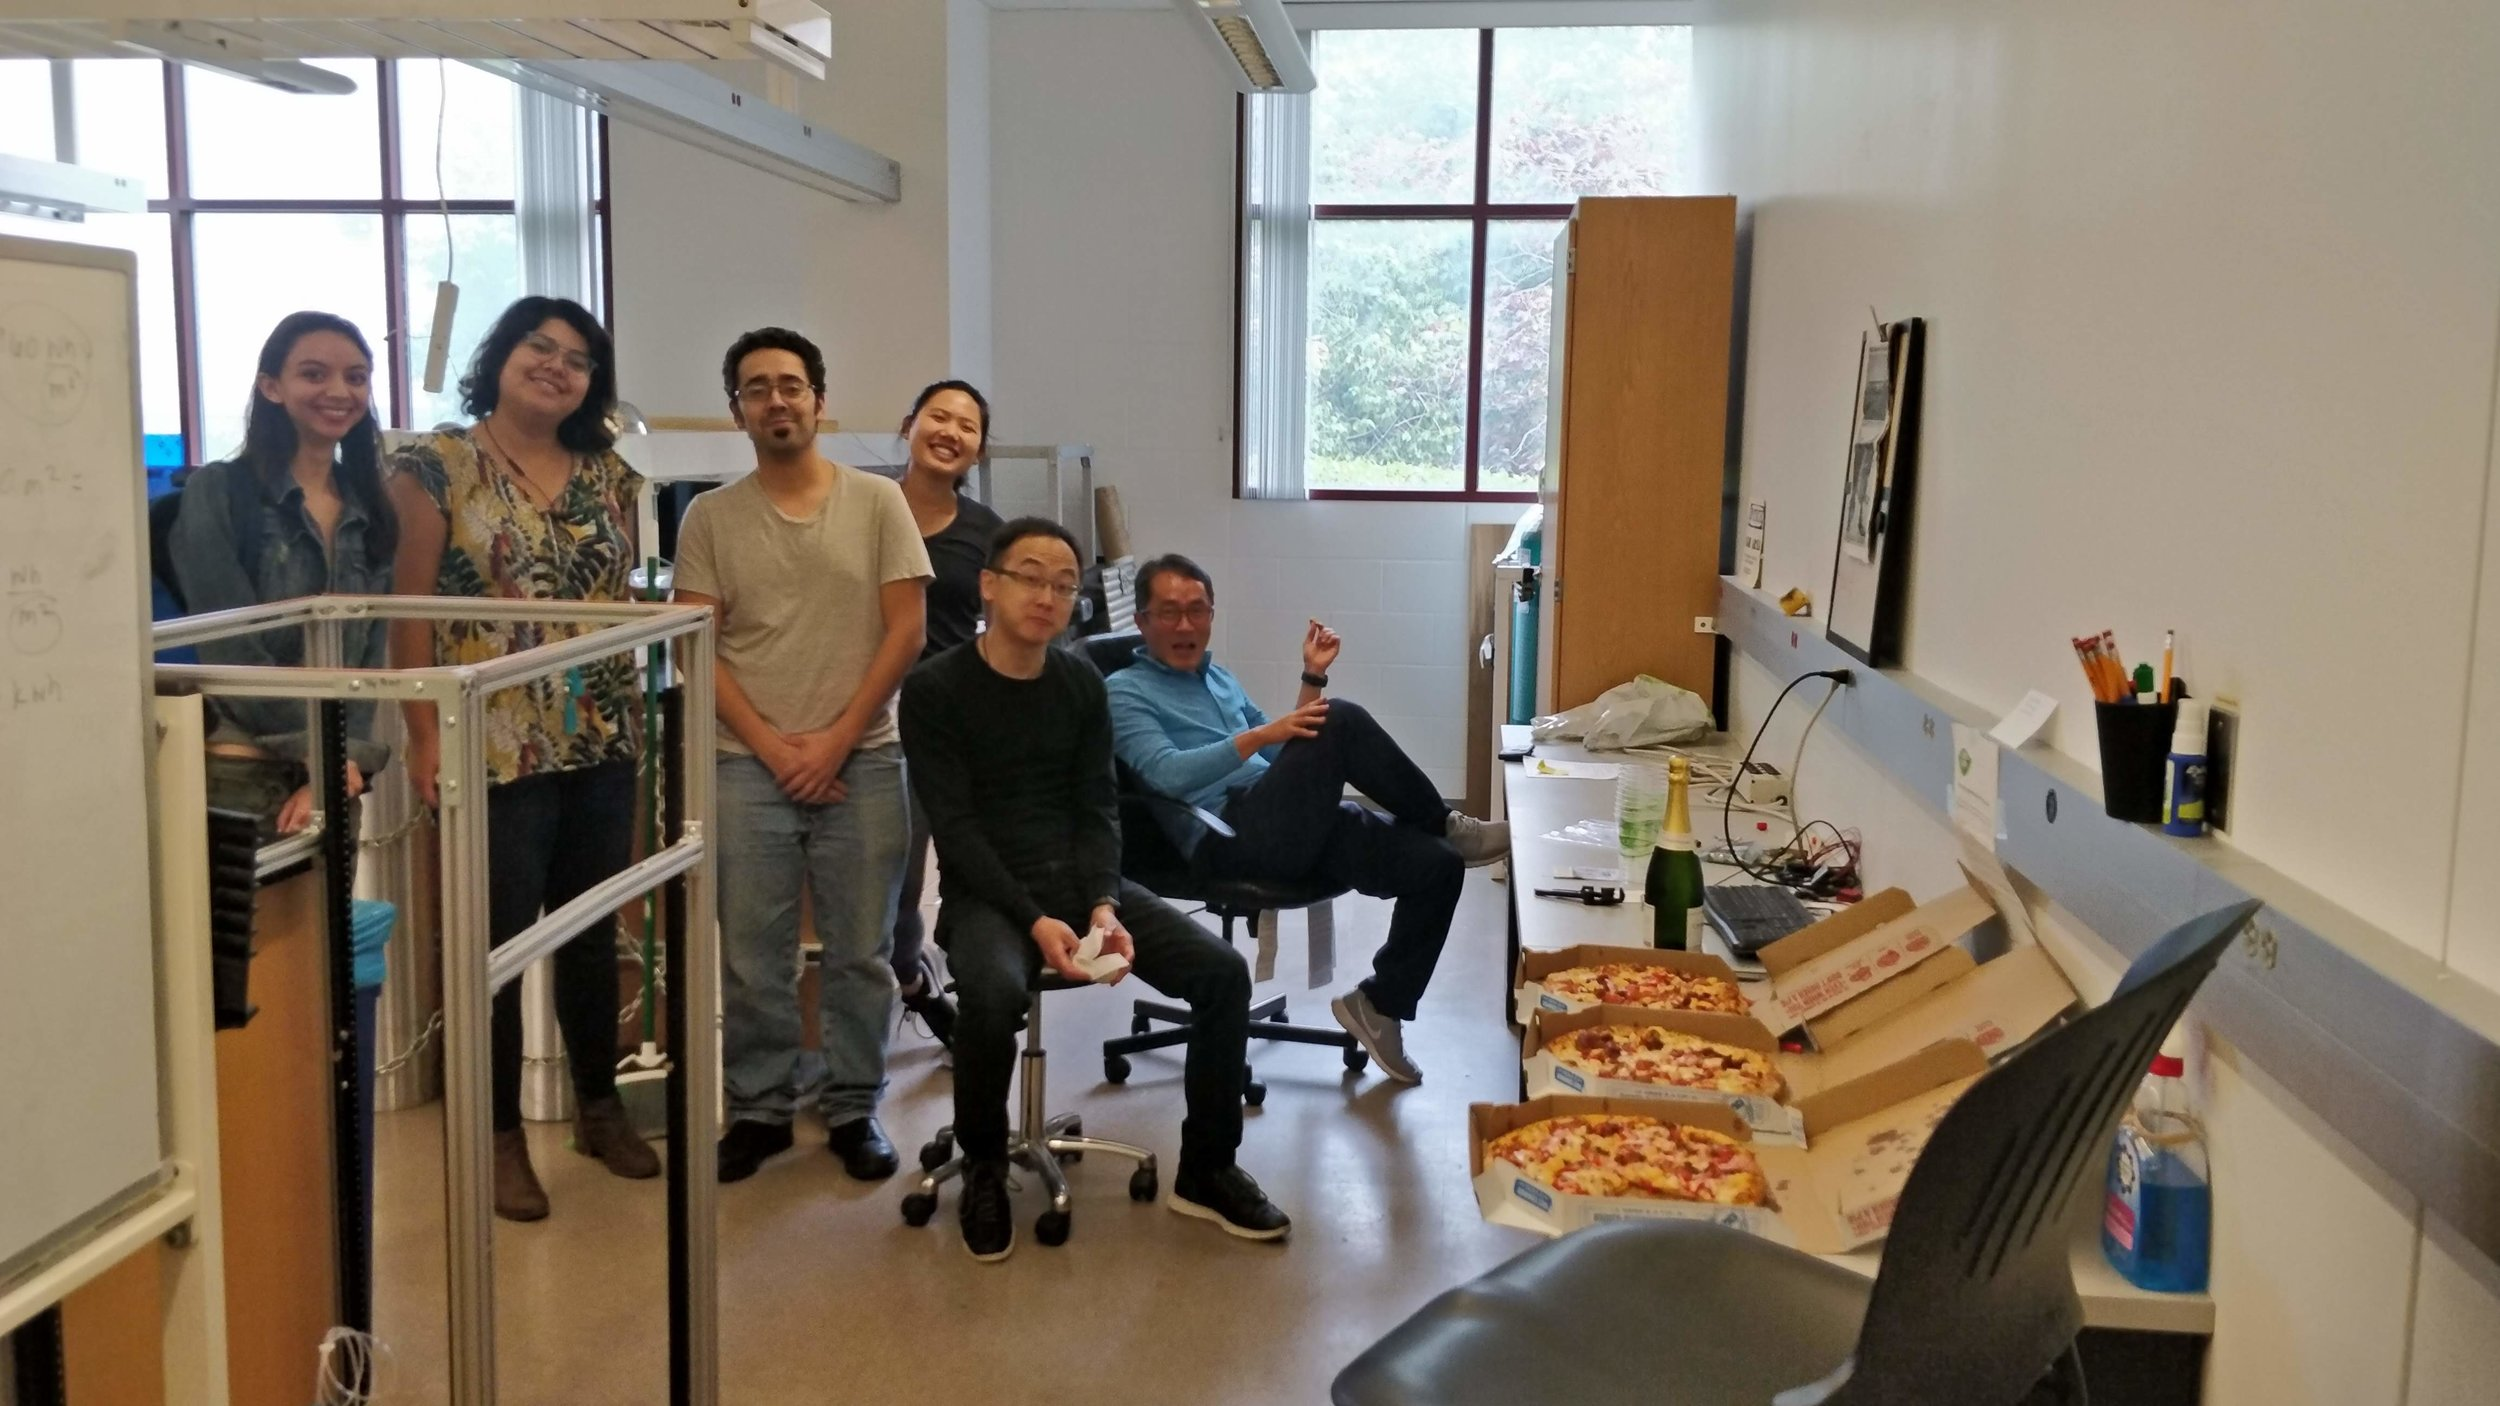 Pizza party because we finally shipped out the whole air sampling system! Whew!